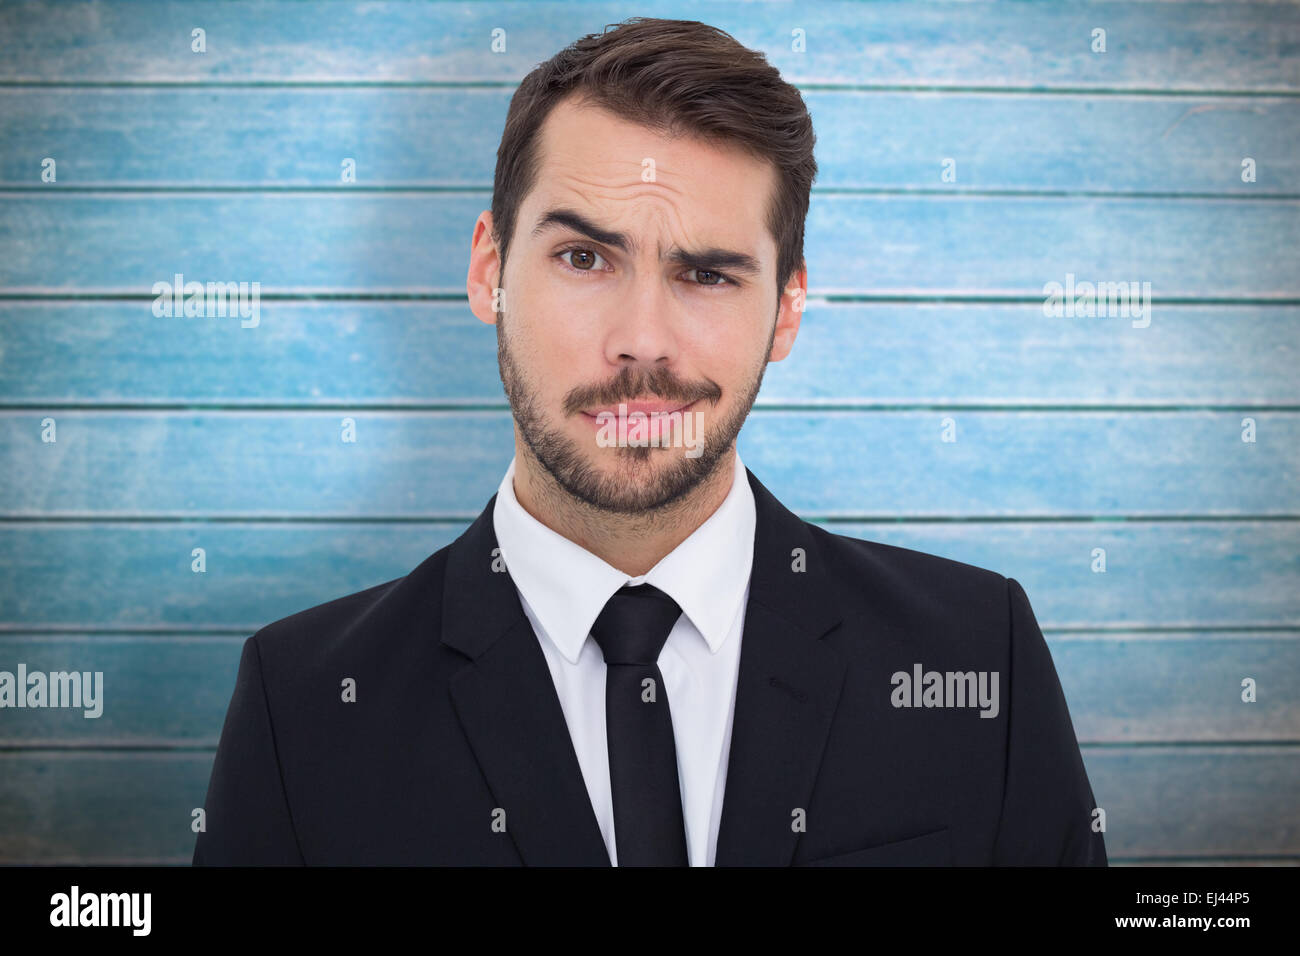 Composite image of portrait of a skeptical businessman well dressed - Stock Image